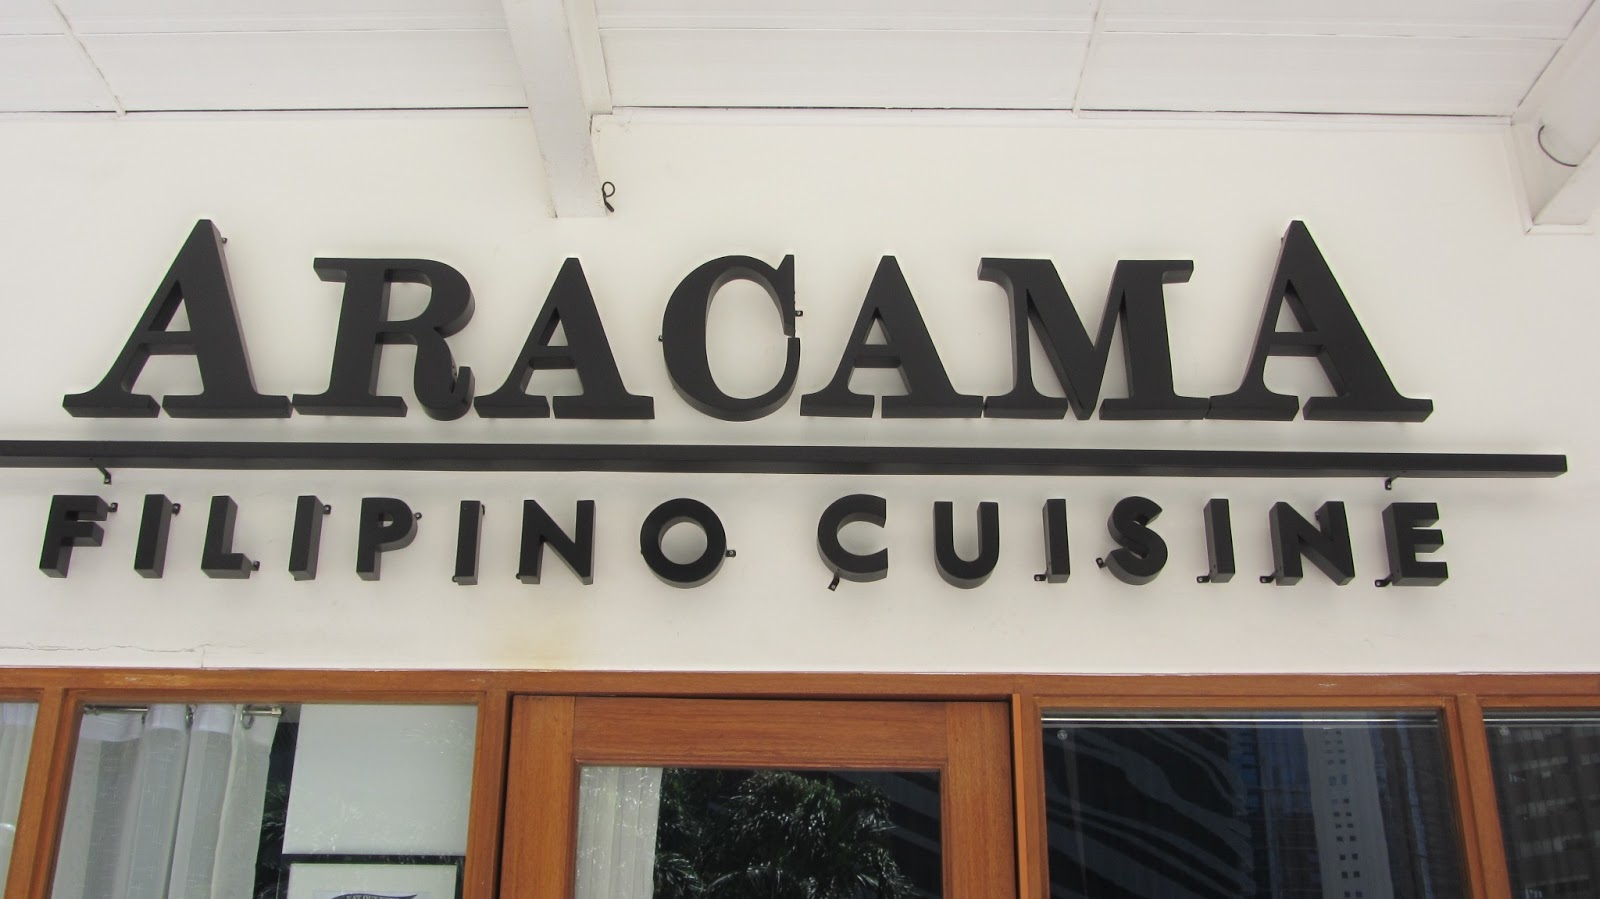 Aracama filipino cuisine at the fort walkandeat for Aracama filipino cuisine